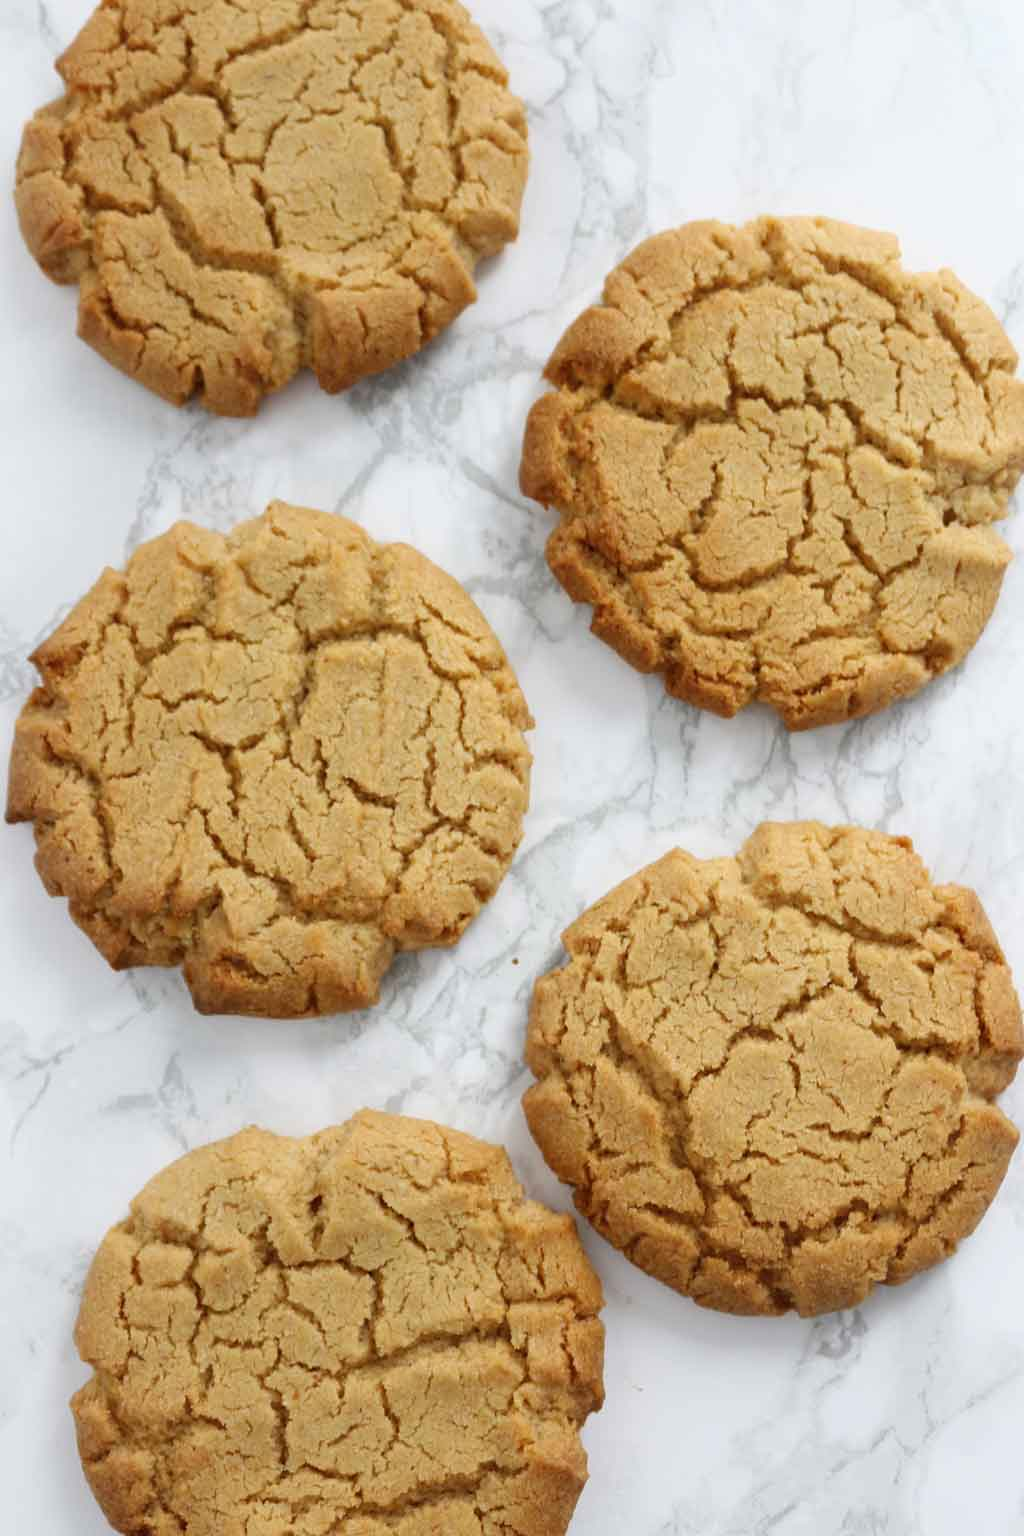 Vegan Peanut Butter Cookies laying flat on a white surface